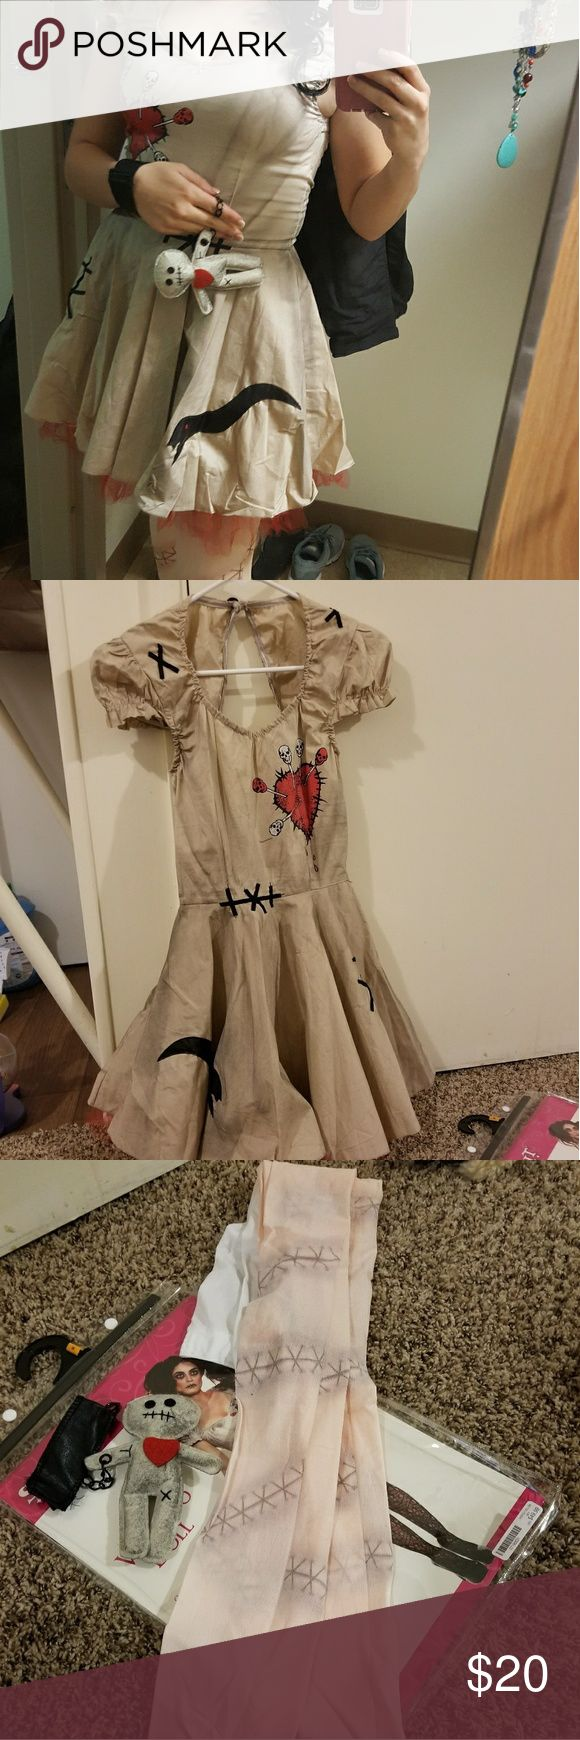 Voodoo Doll costume Only worn once, it's in perfect condition.  The original costume was only the dress and the little voodoo doll but I added in the nylons that I wore with the costume since they go so well with the costume. The original price for the costume was 50$ and the stitched tights were another 15$. Spirit Other